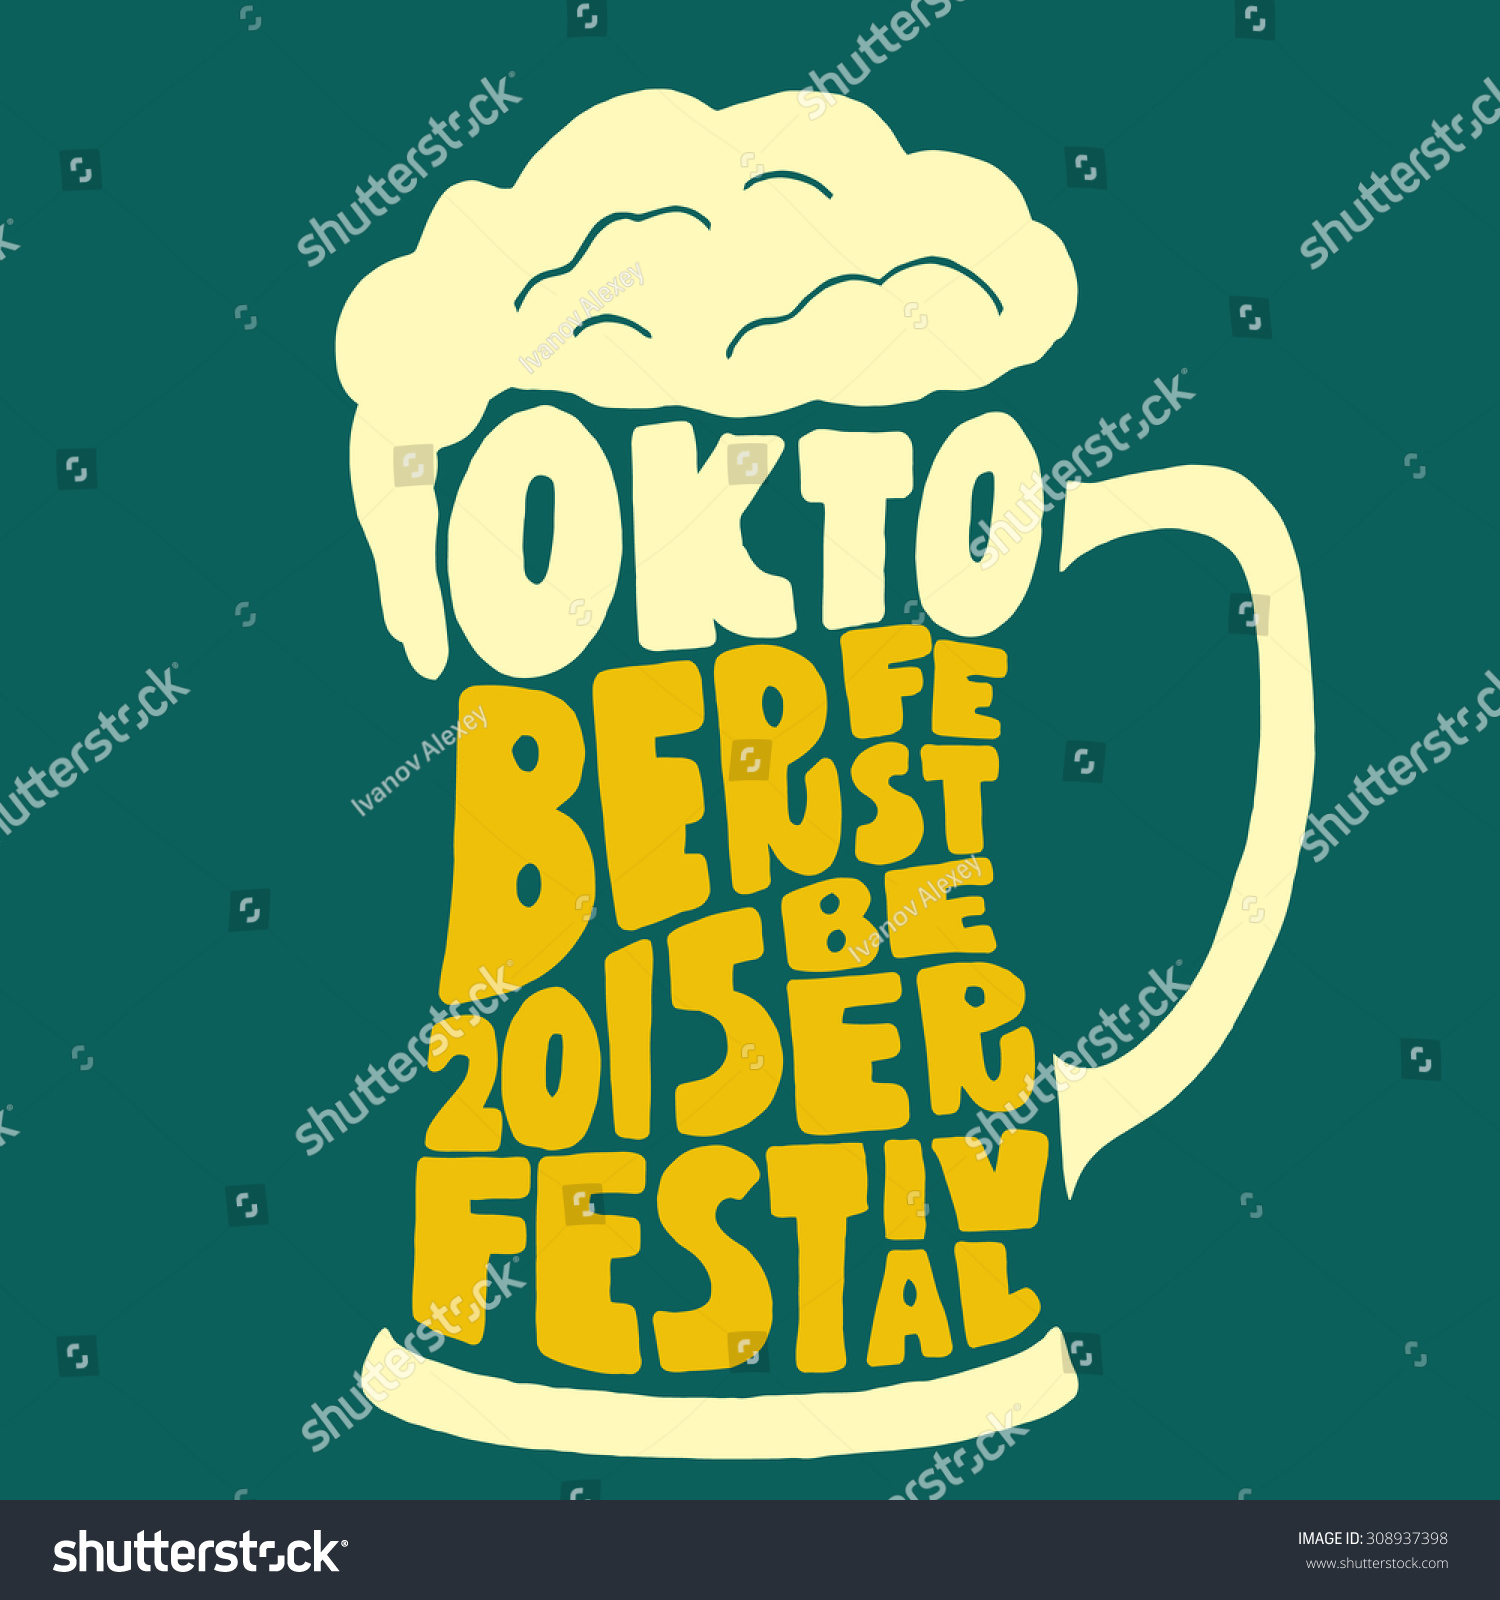 Oktoberfest 2015 beer festival handmade typographic art for poster print greeting card t shirt apparel